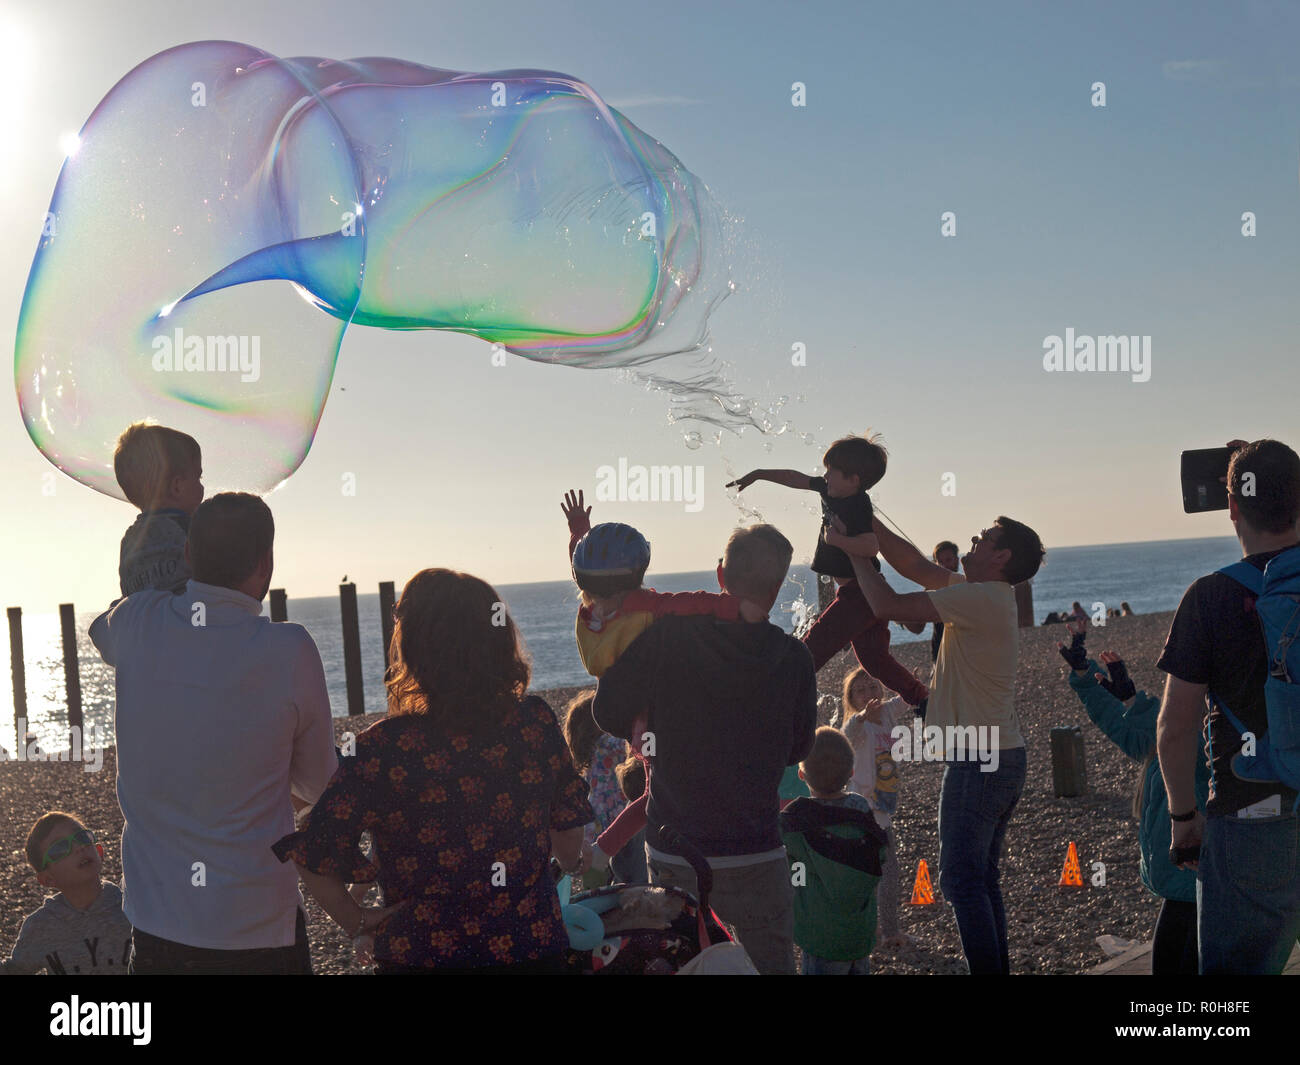 Large bubbles being blown for the amusement of children on the beach at Brighton - Stock Image